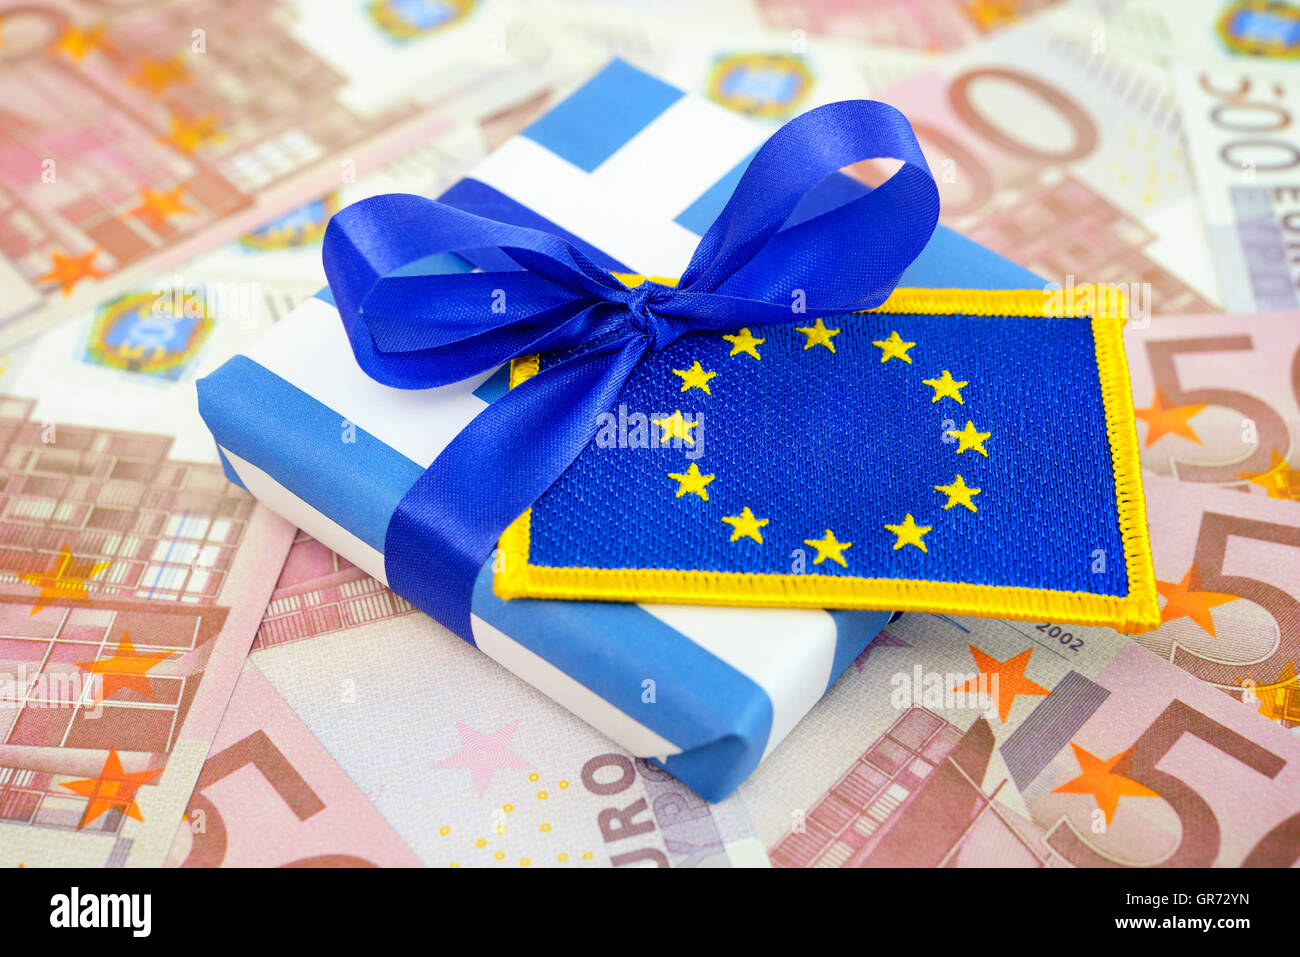 Greek Bailout Package - Stock Image